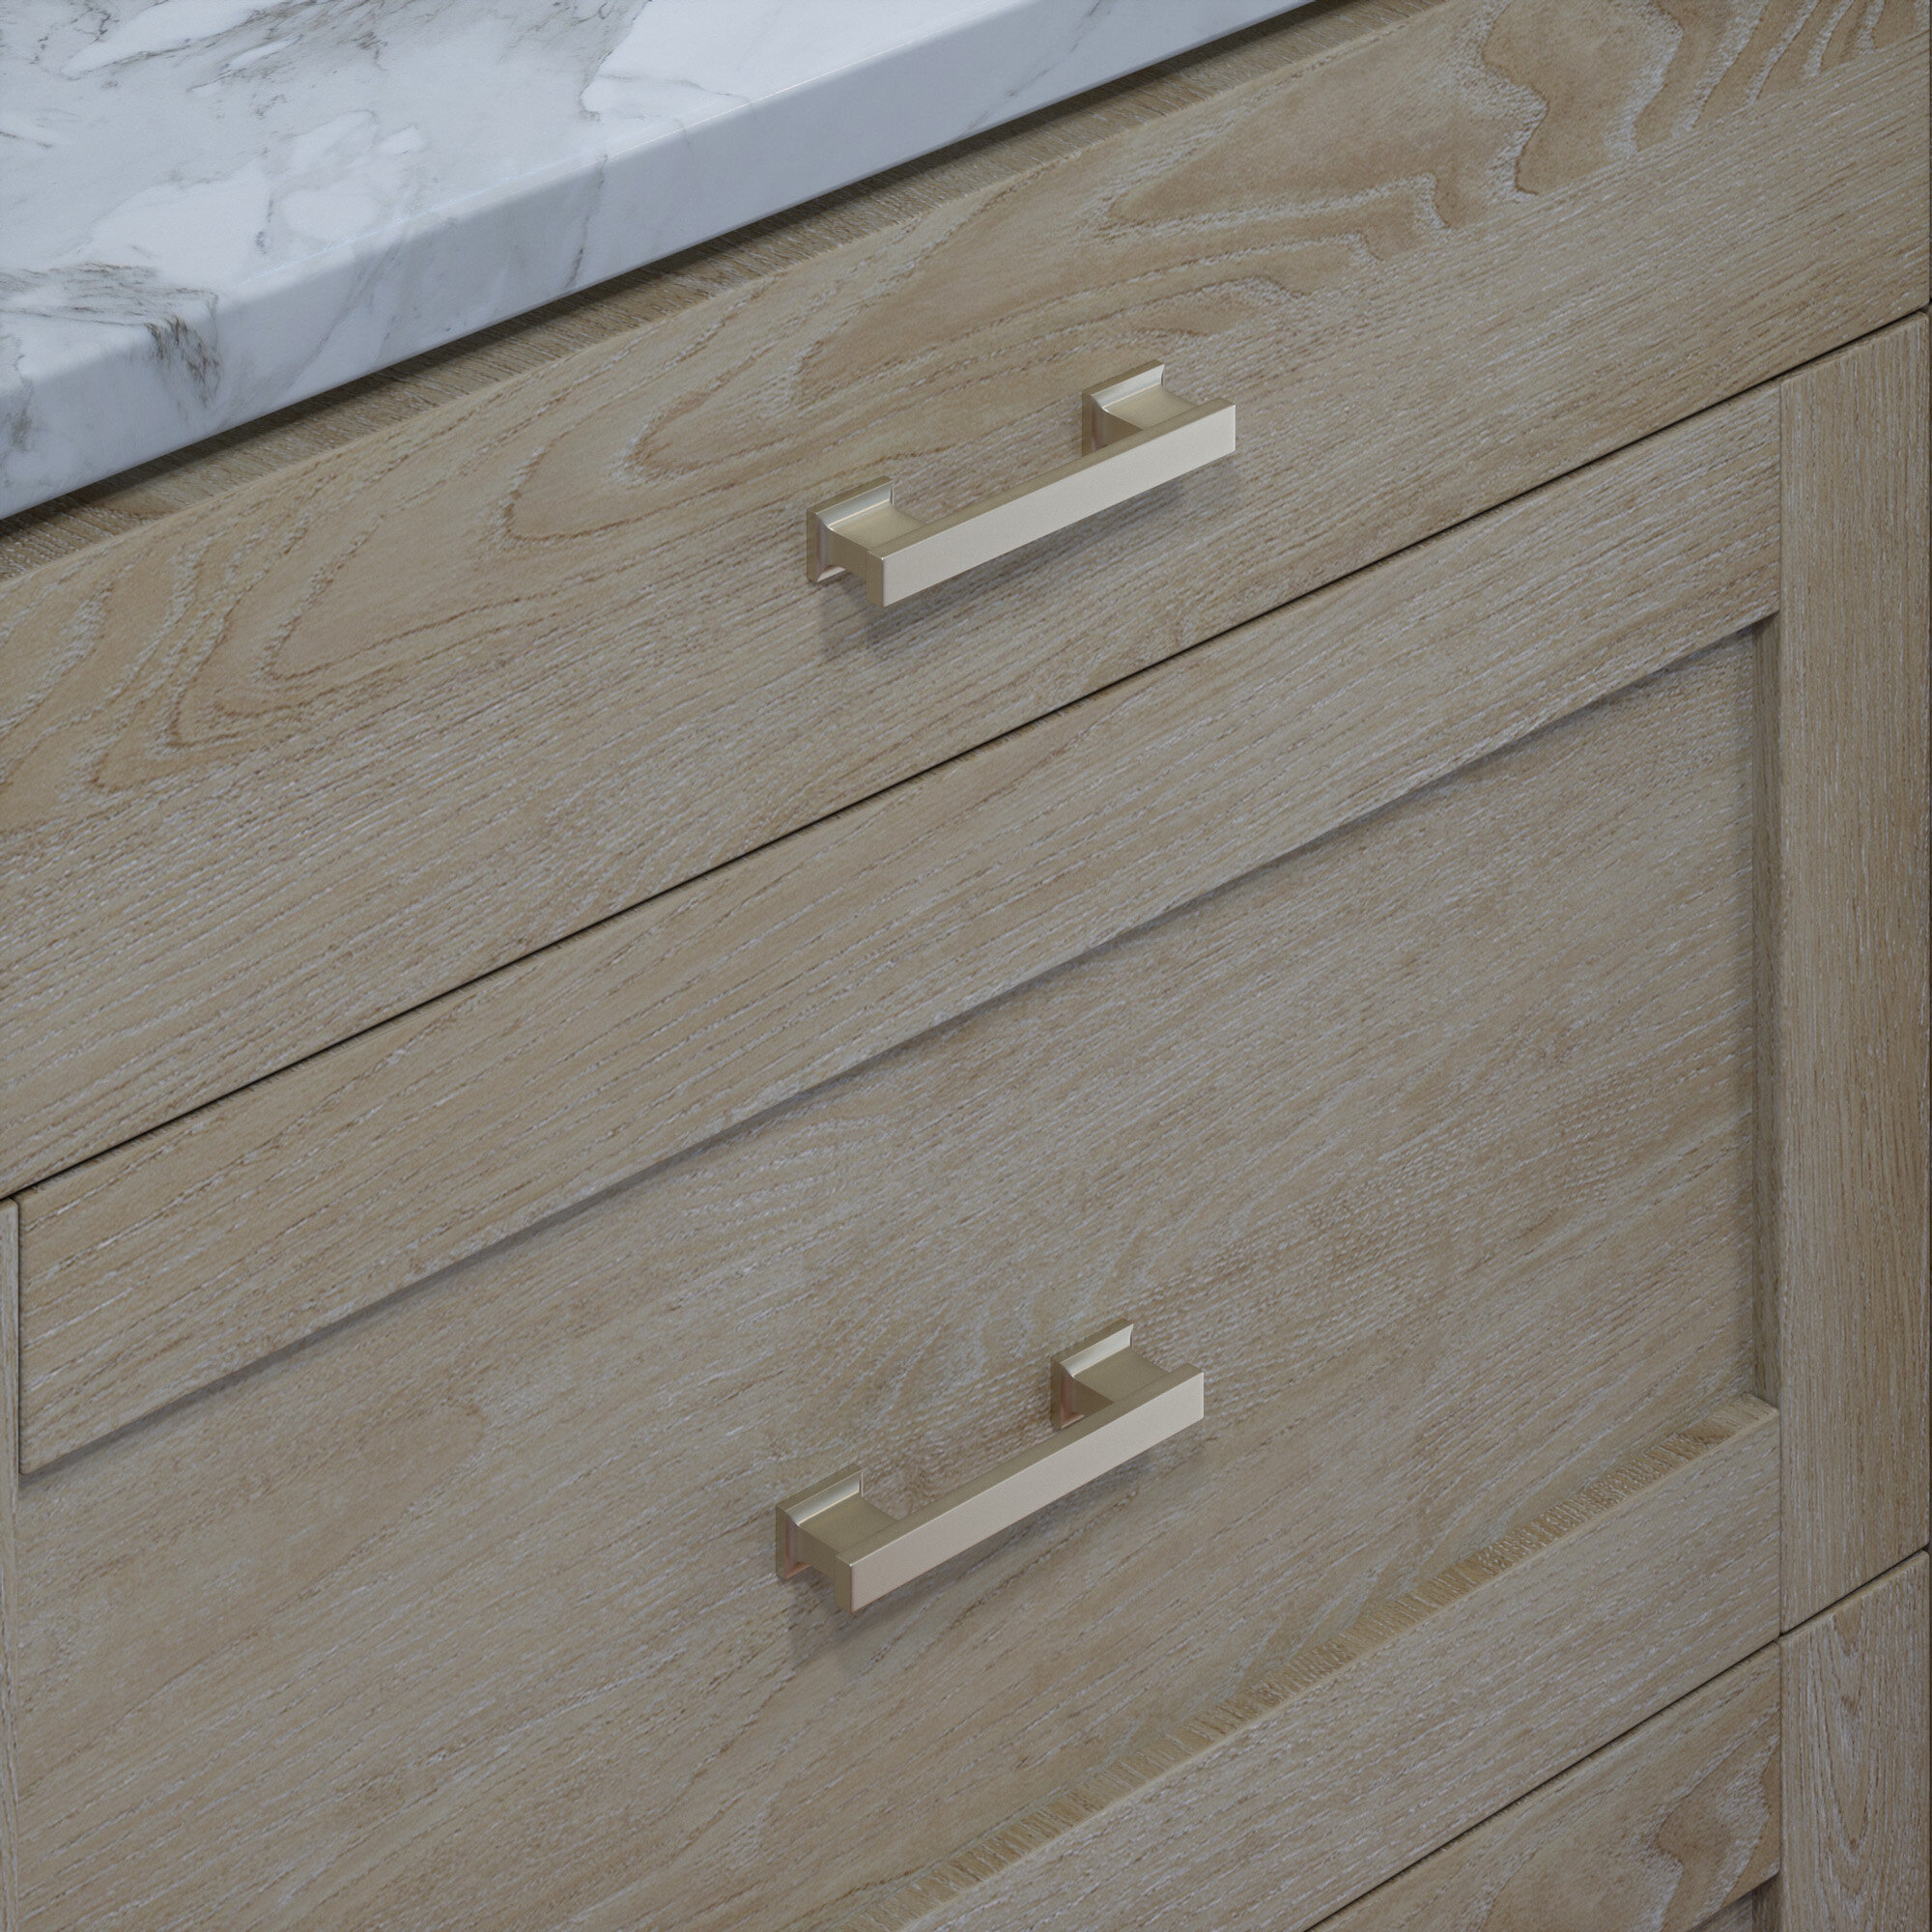 3 5 Inch Cabinet Drawer Pulls You Ll Love In 2021 Wayfair